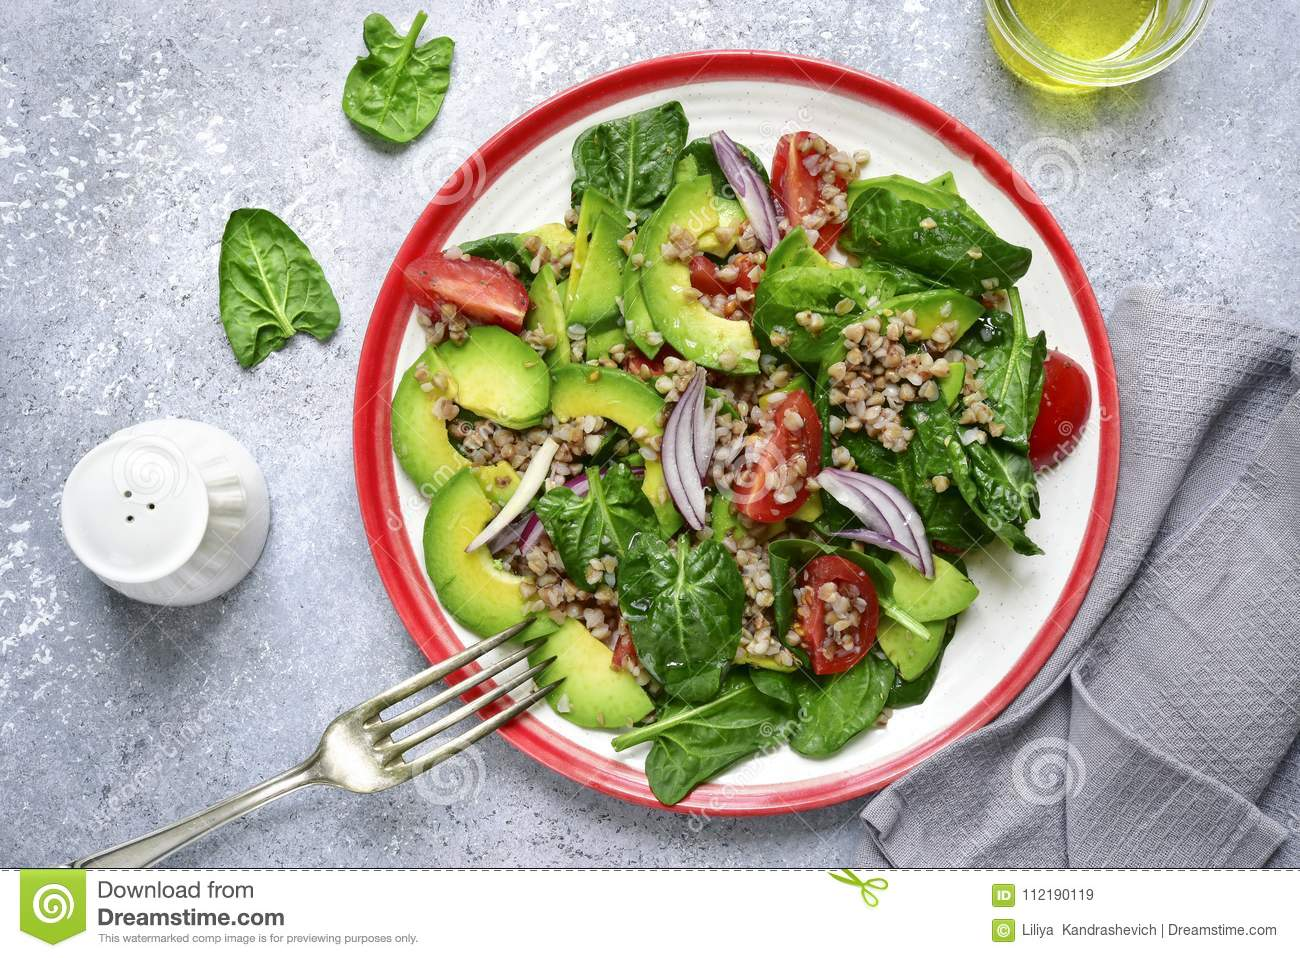 vegetable sald with avocado baby spinach tomato and buckwheat